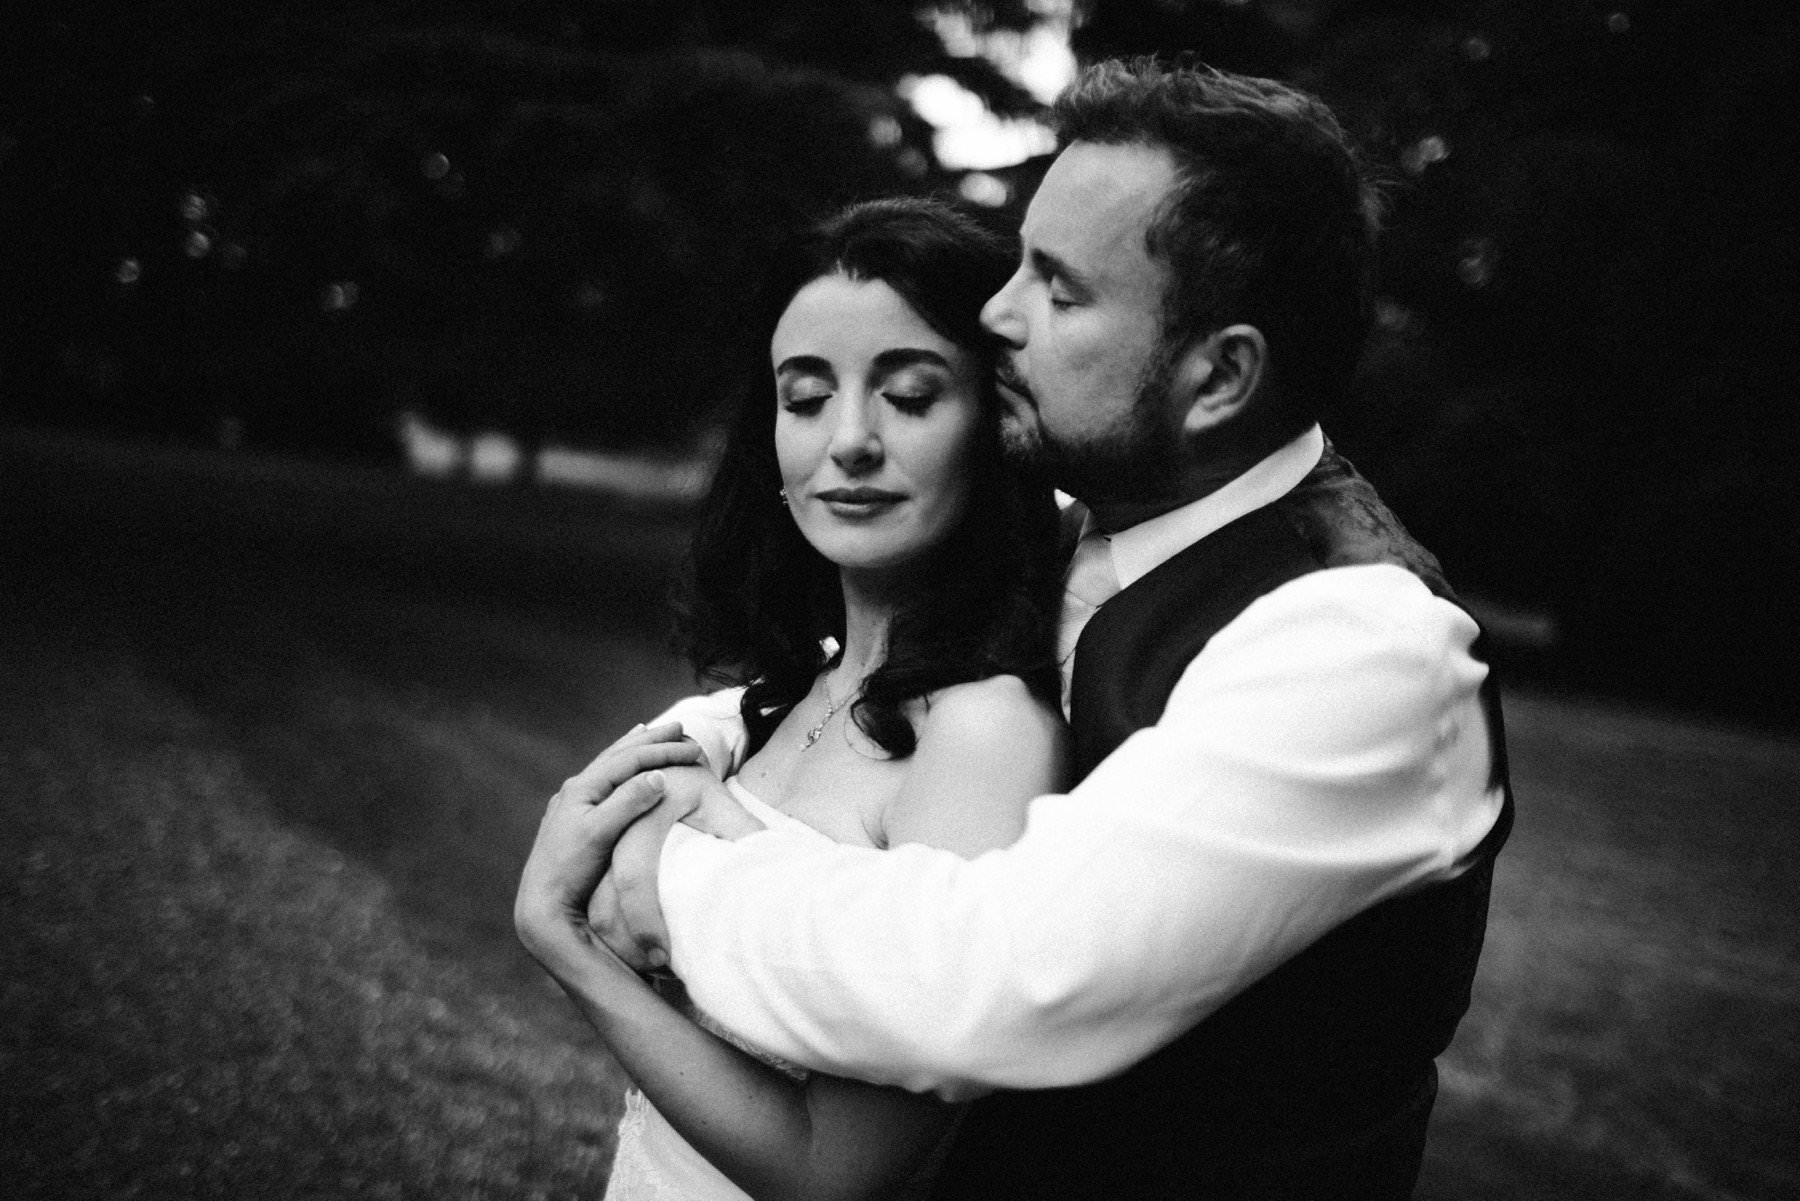 black and white showing bride and groom in embrace for wedding portrait